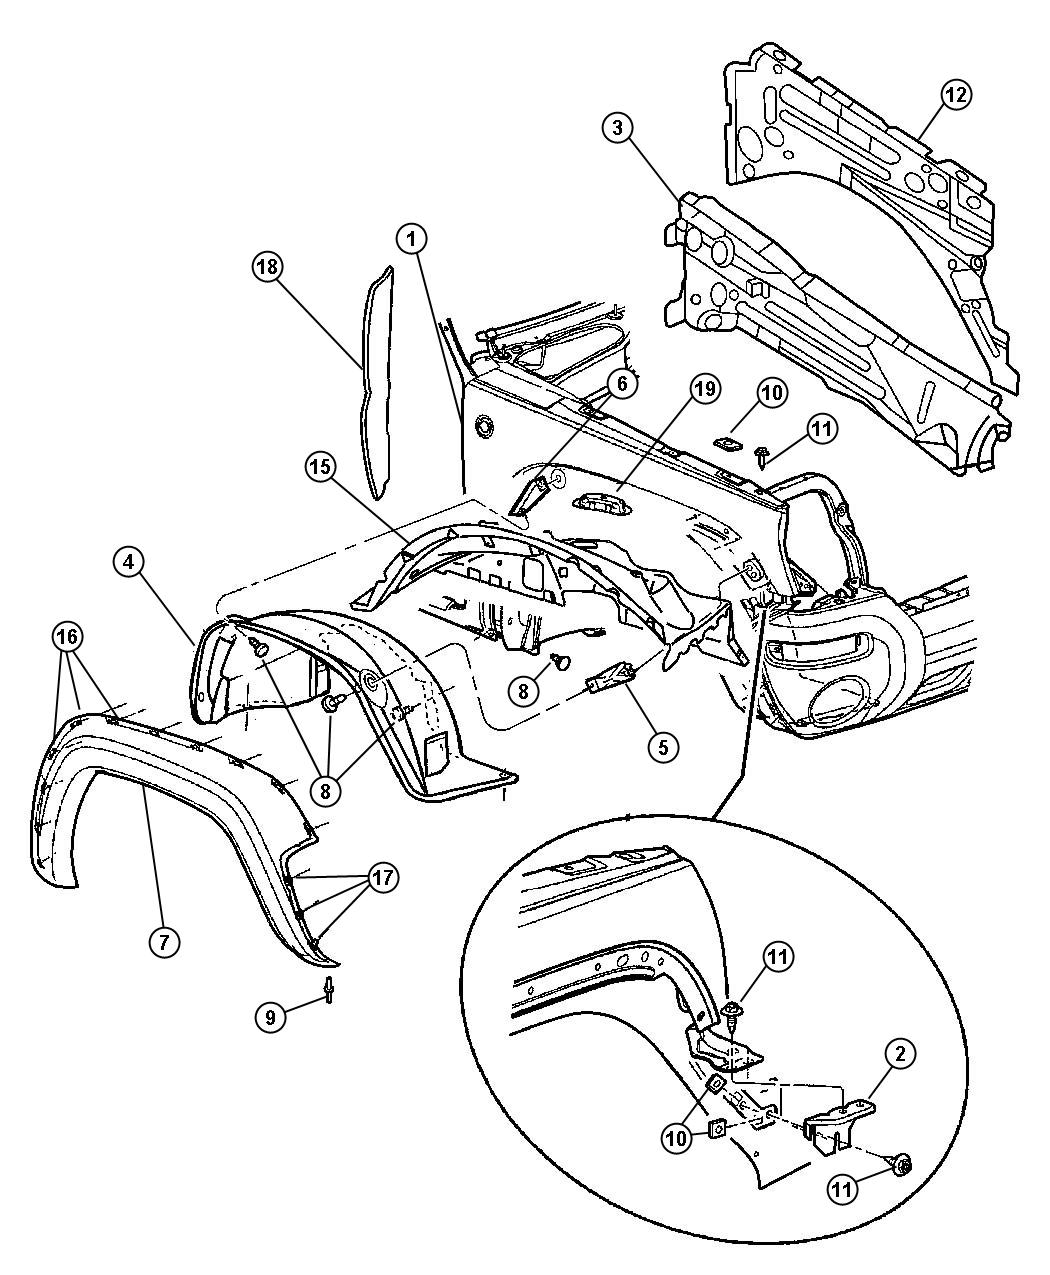 mopar v8 engine  u2022 wiring and engine diagram